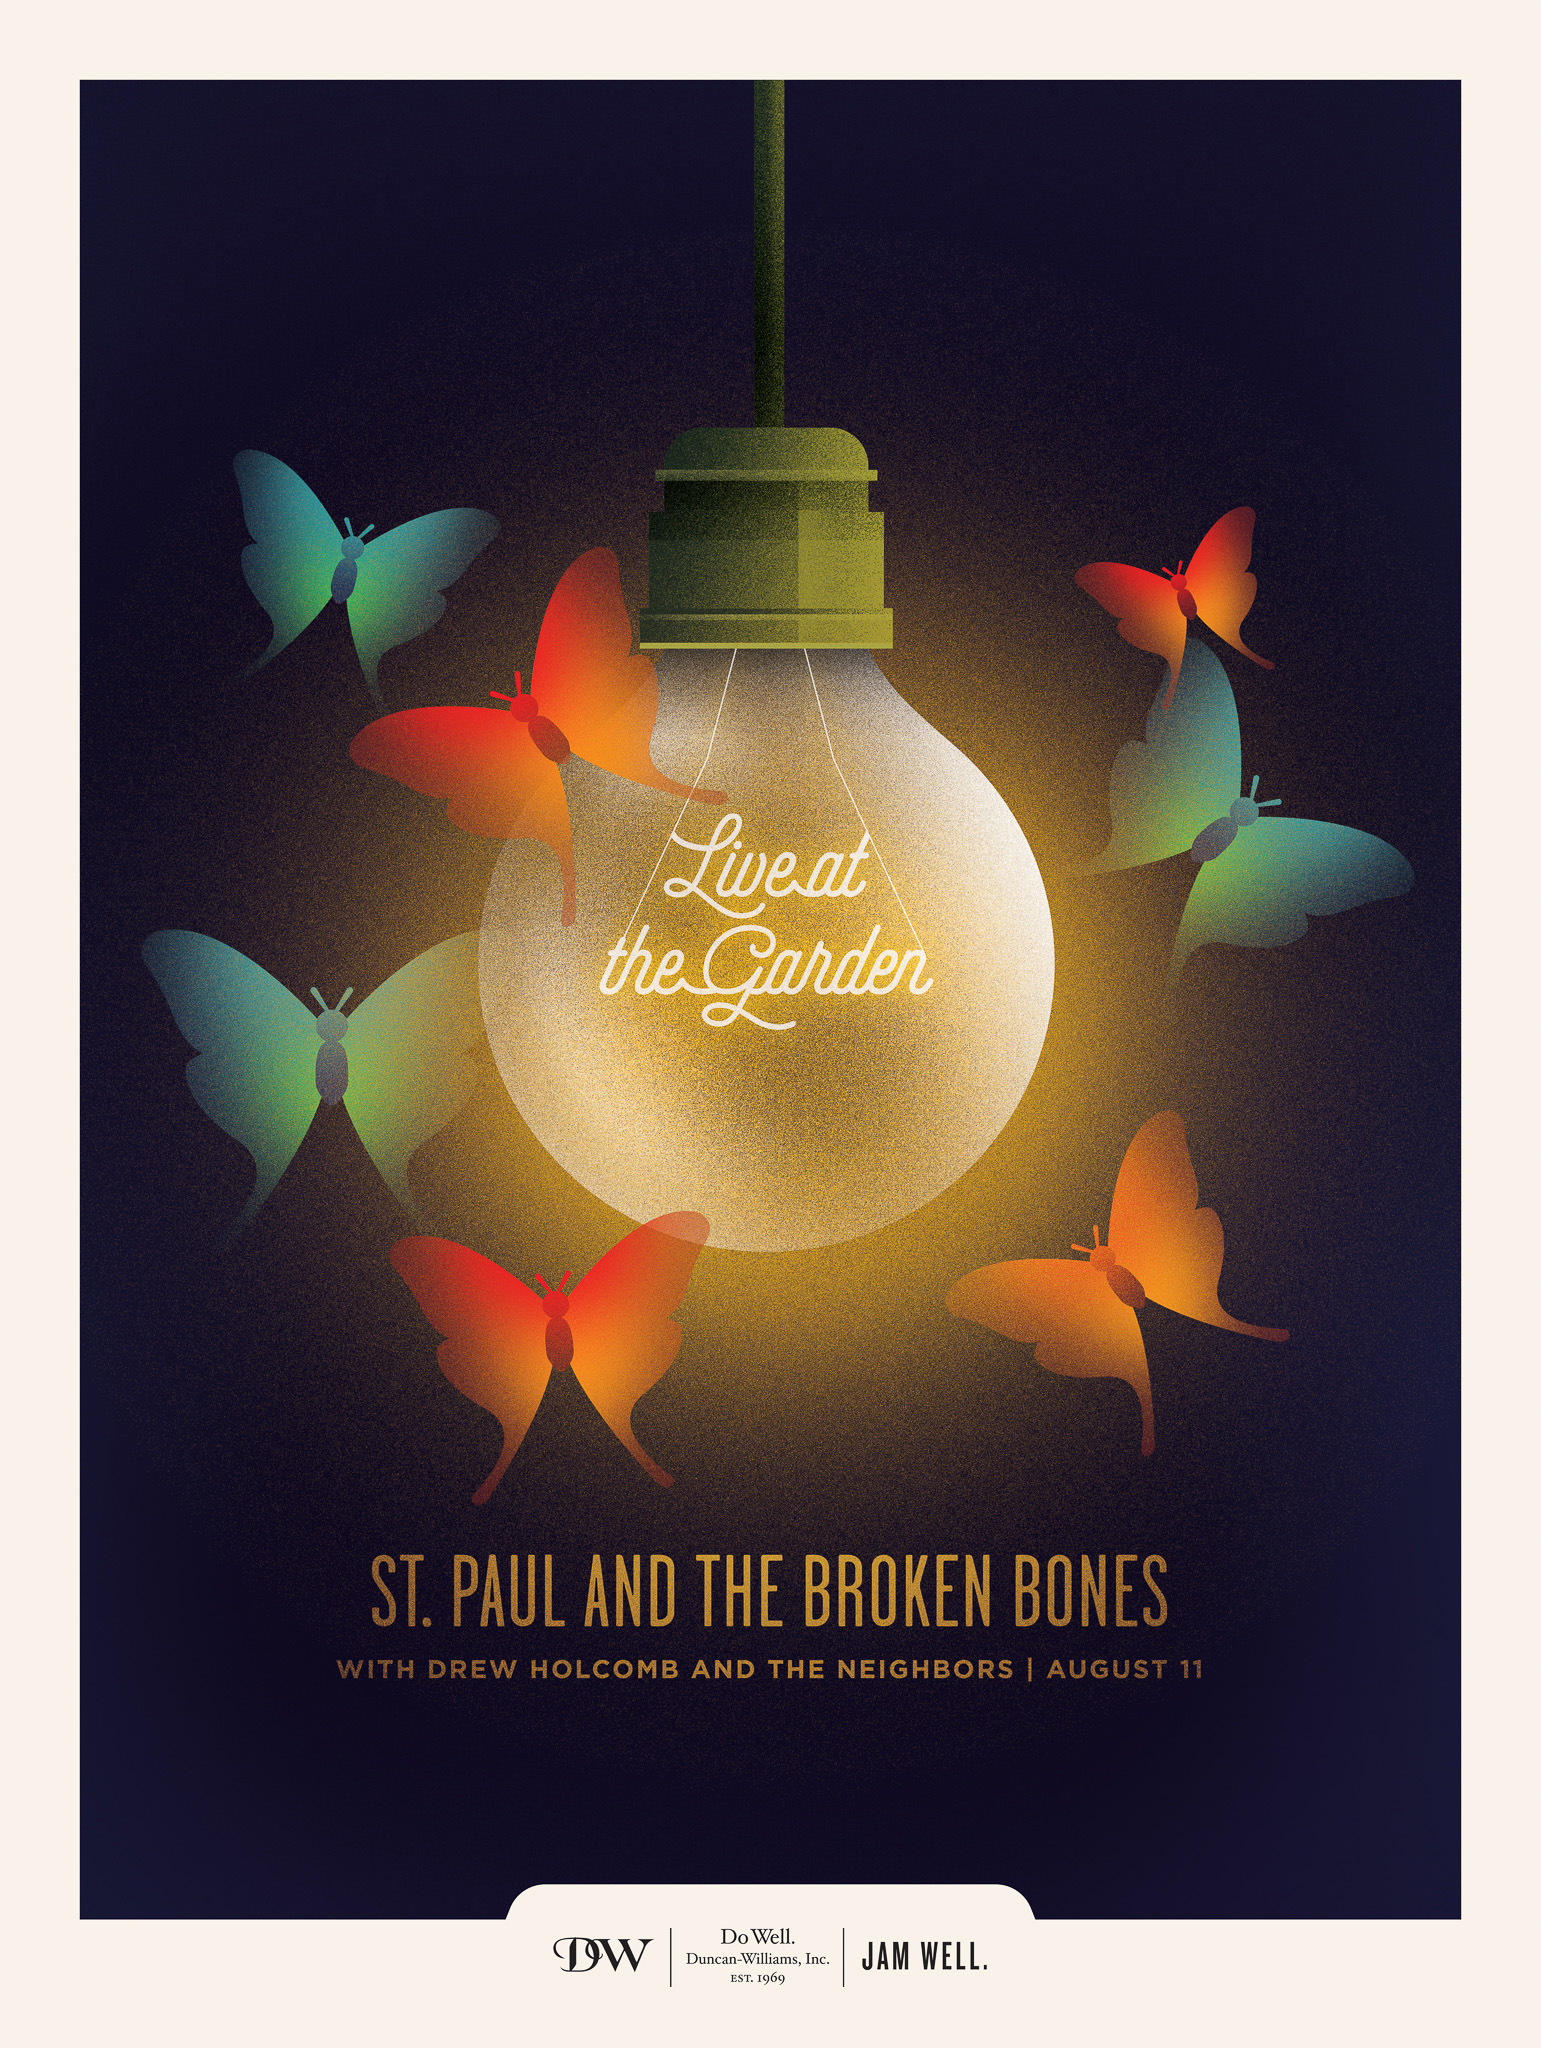 St. Paul and the Broken Bones Live